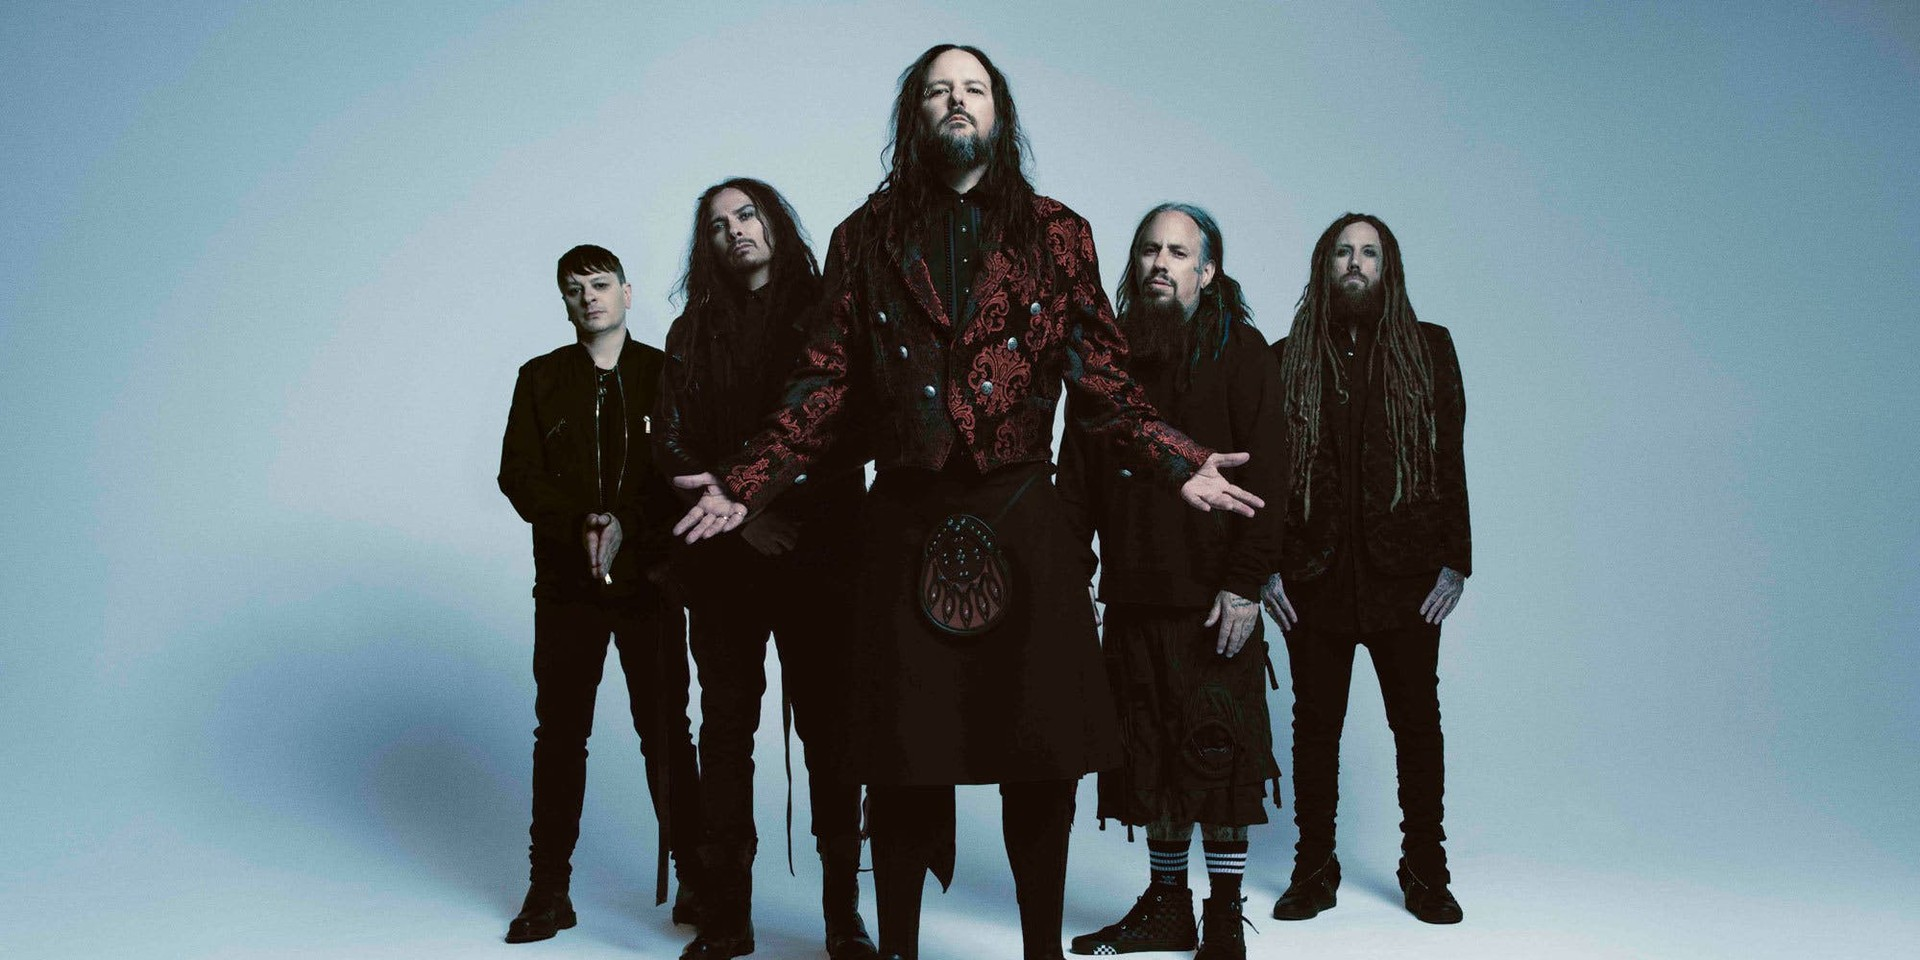 Korn's 13th album, The Nothing, is out now